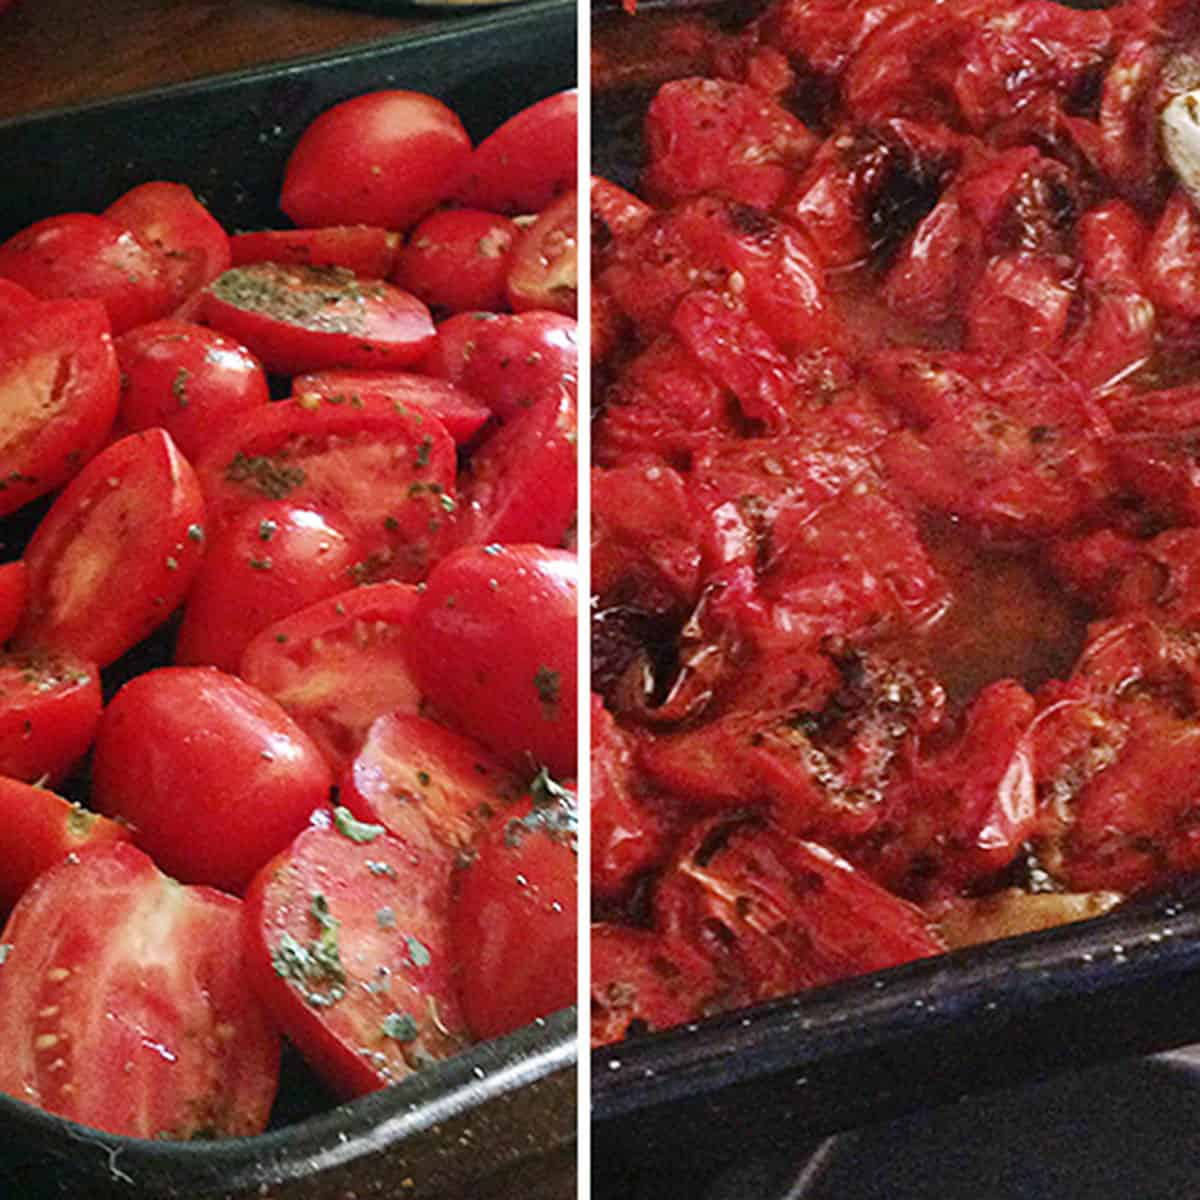 before and after roasting of tomatoes